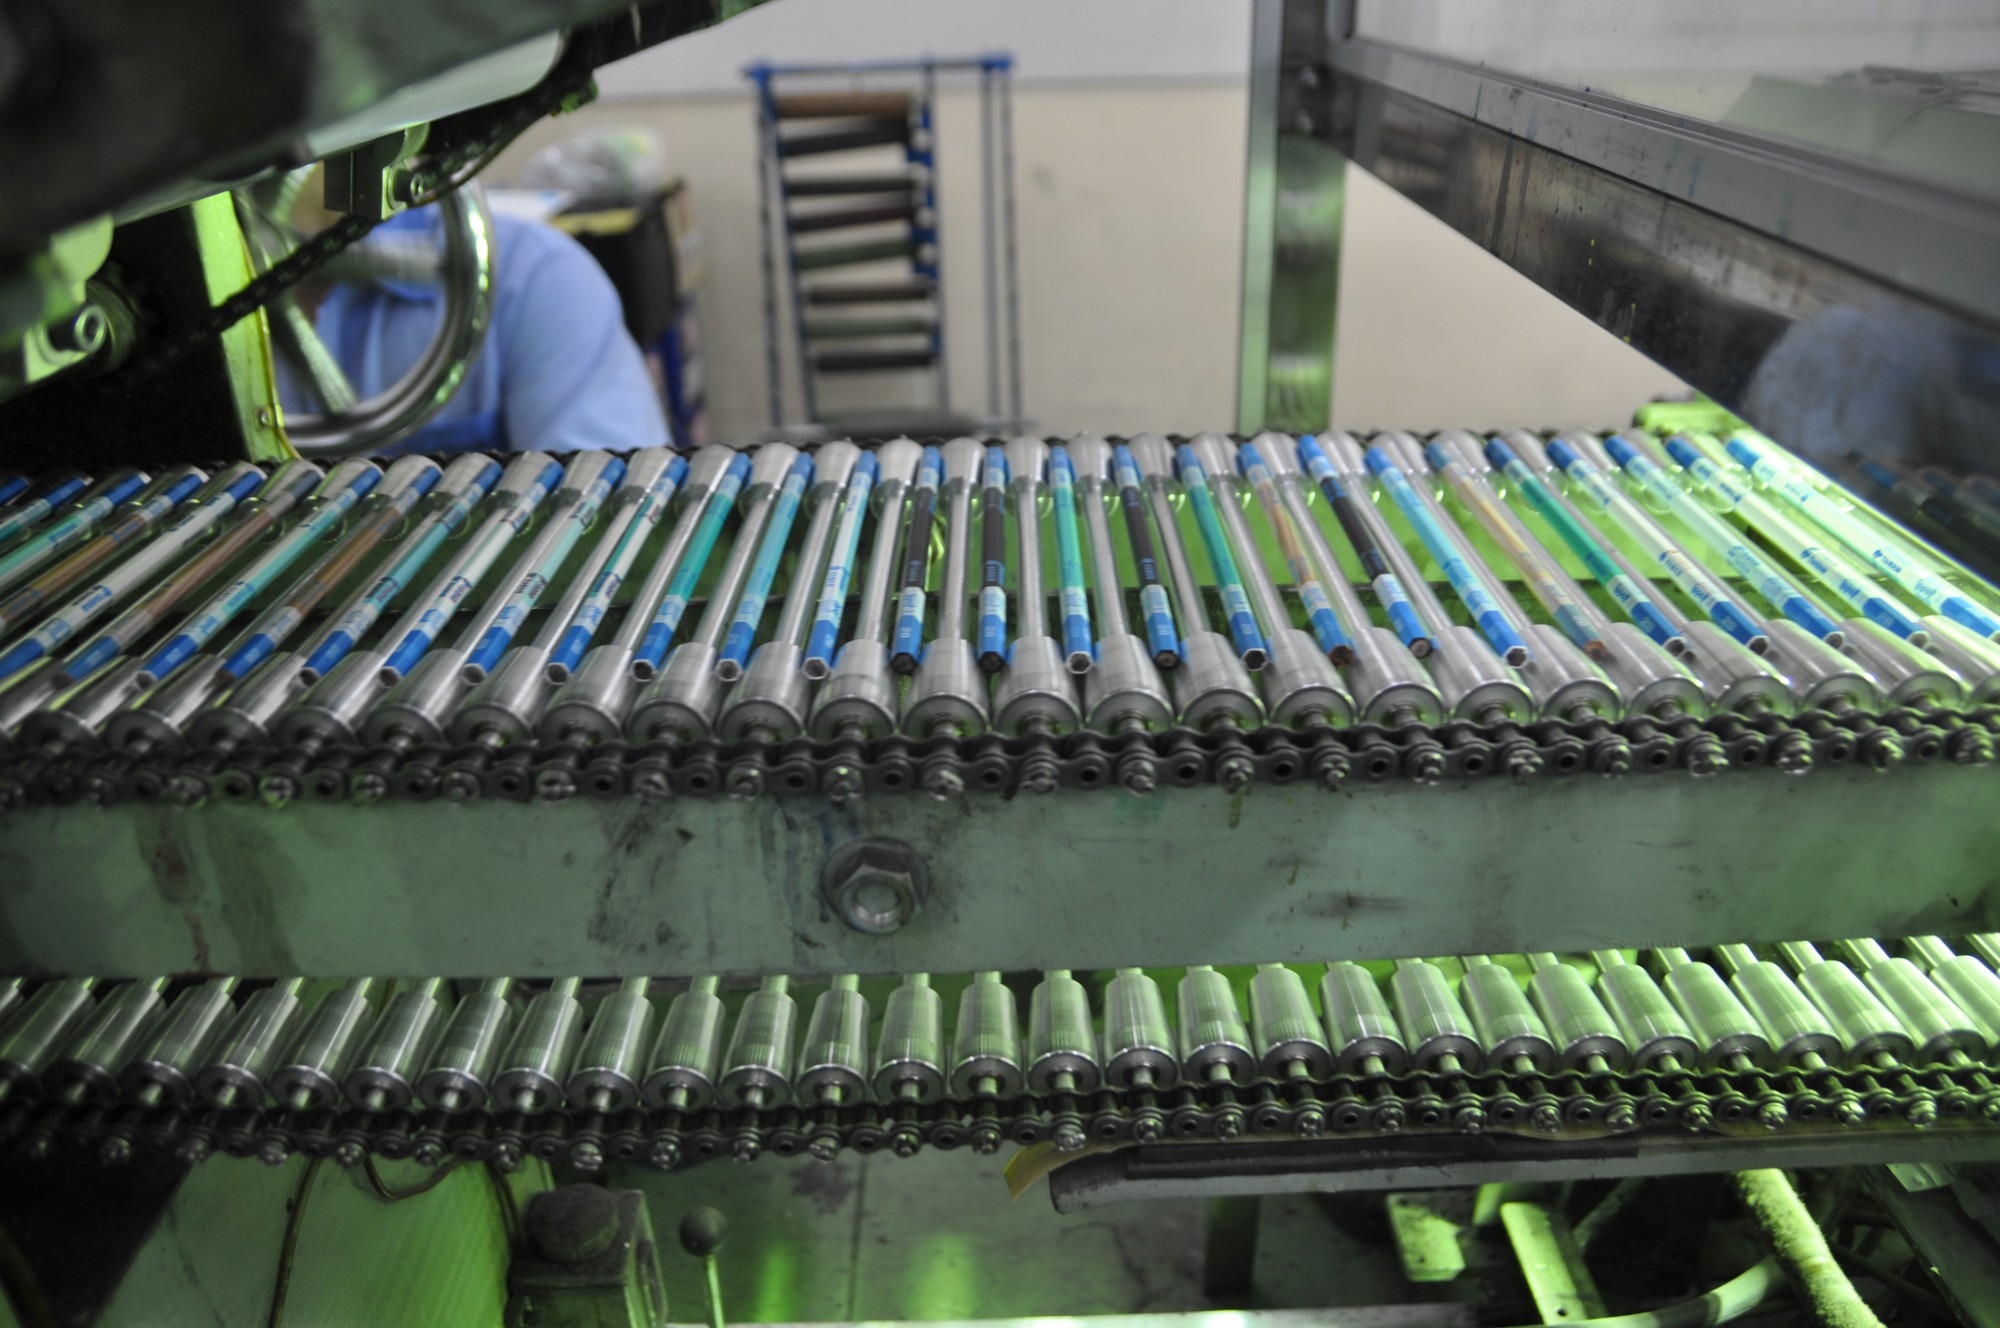 SPECIAL-TYPED ROLLER CONVEYOR FOR TRANSPORTING PENCIL